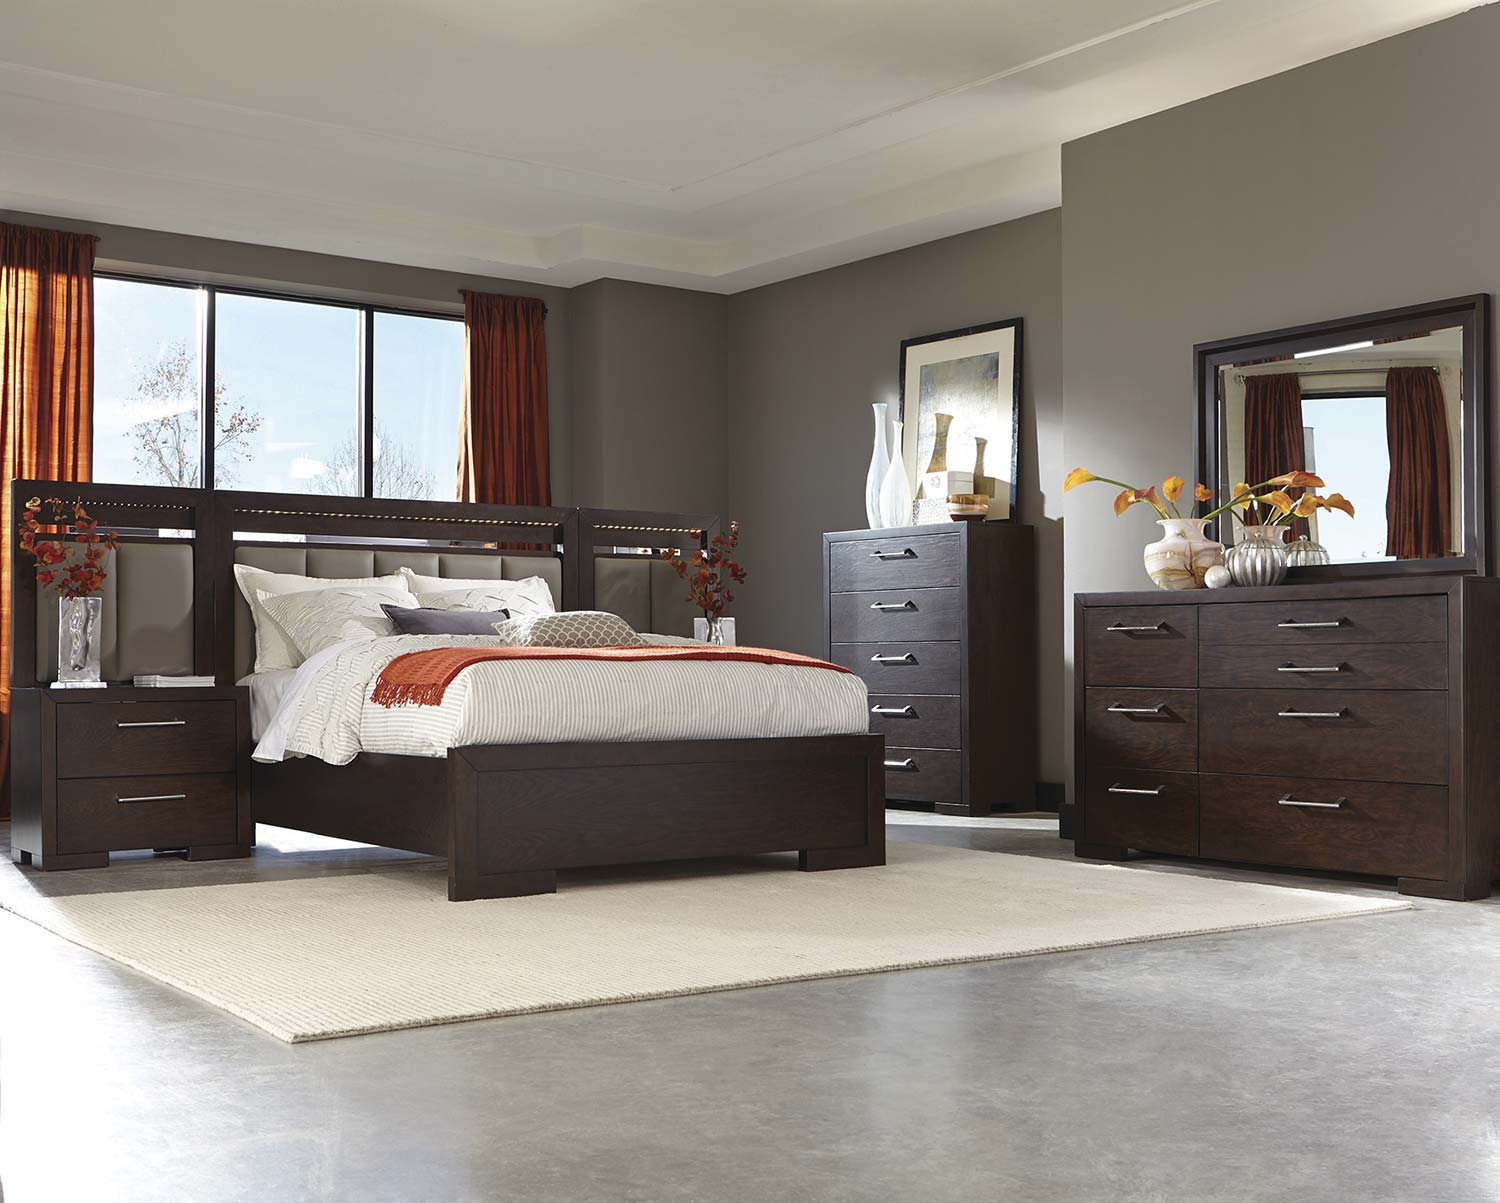 Coaster Berkshire Lighted Panel Bedroom Set - Bitter Chocolate